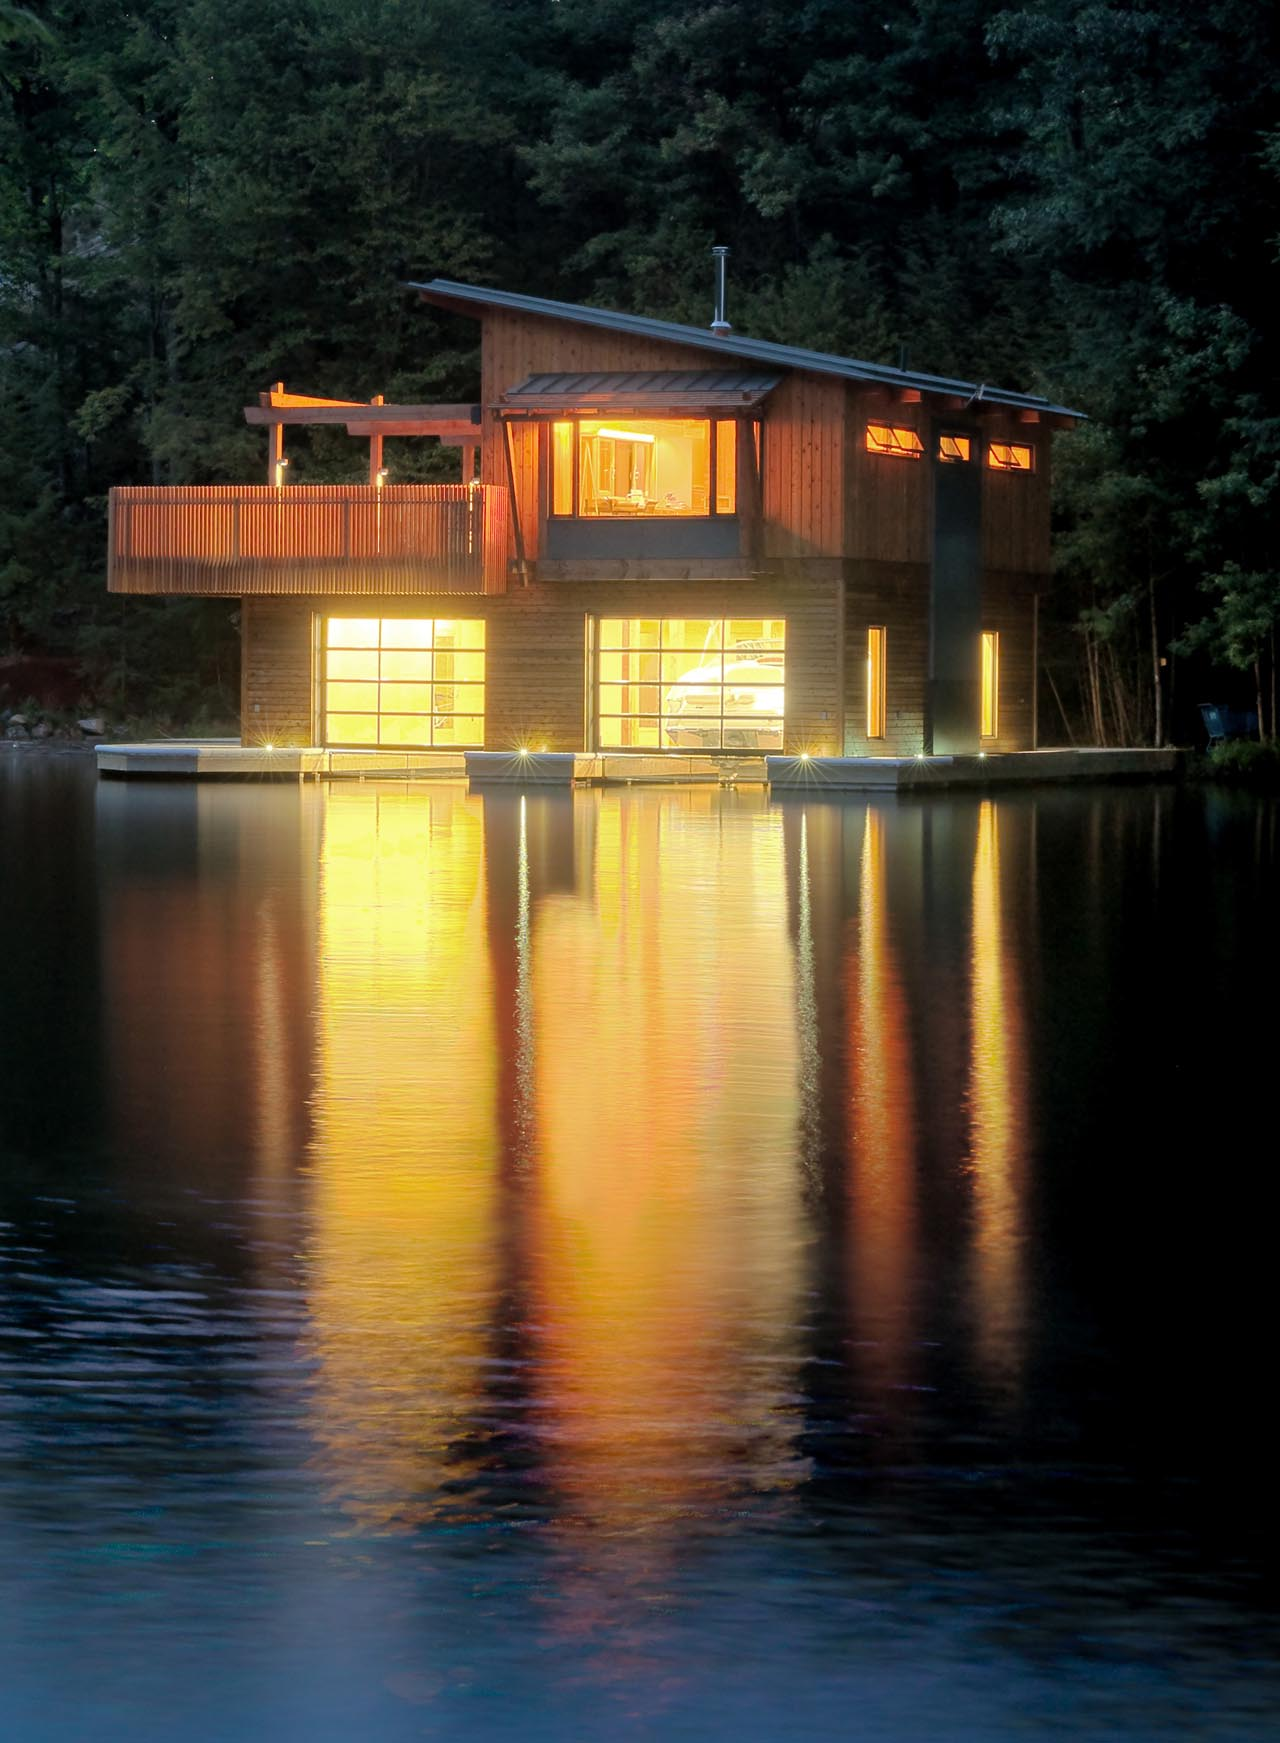 Evening, Lights Reflecting on the Water, Boathouse Renovation and Extension in Muskoka Lakes, Ontario